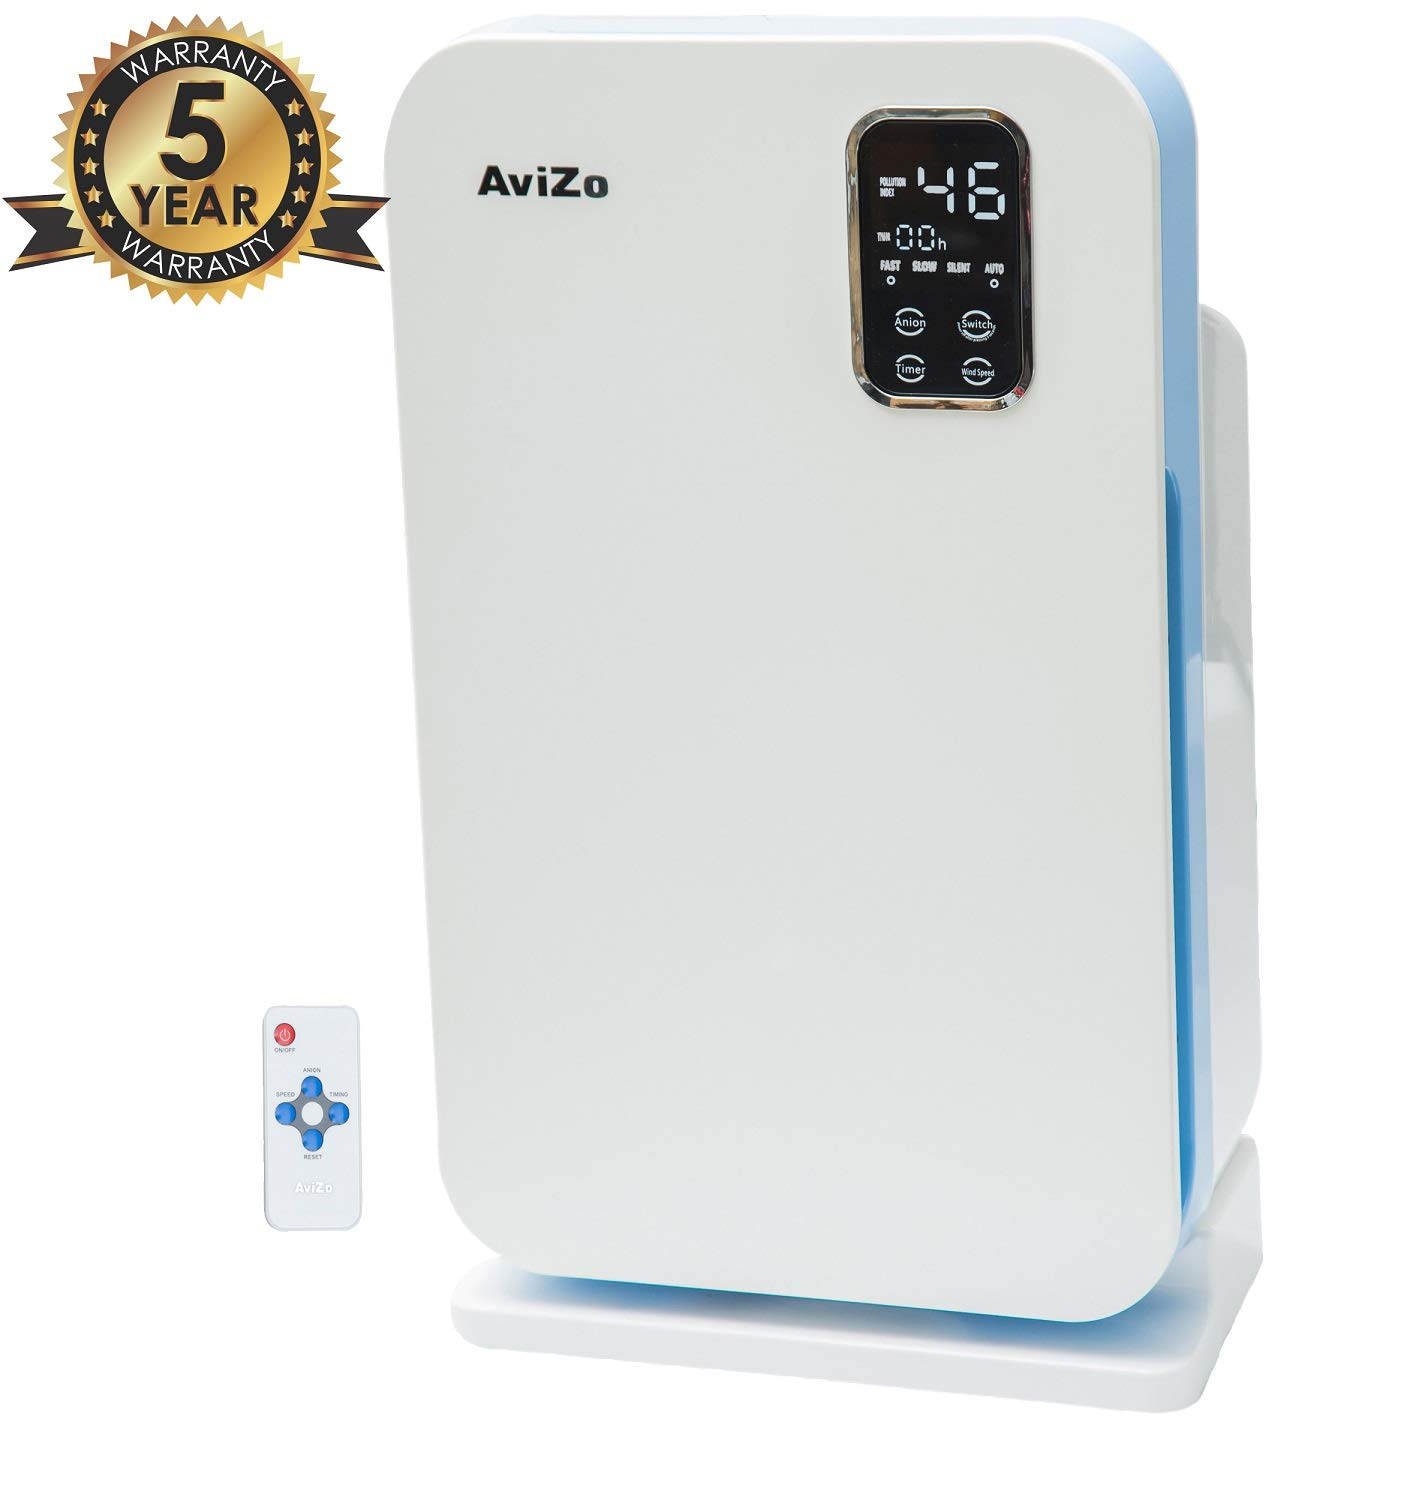 AviZo A1606 Room Air Purifier